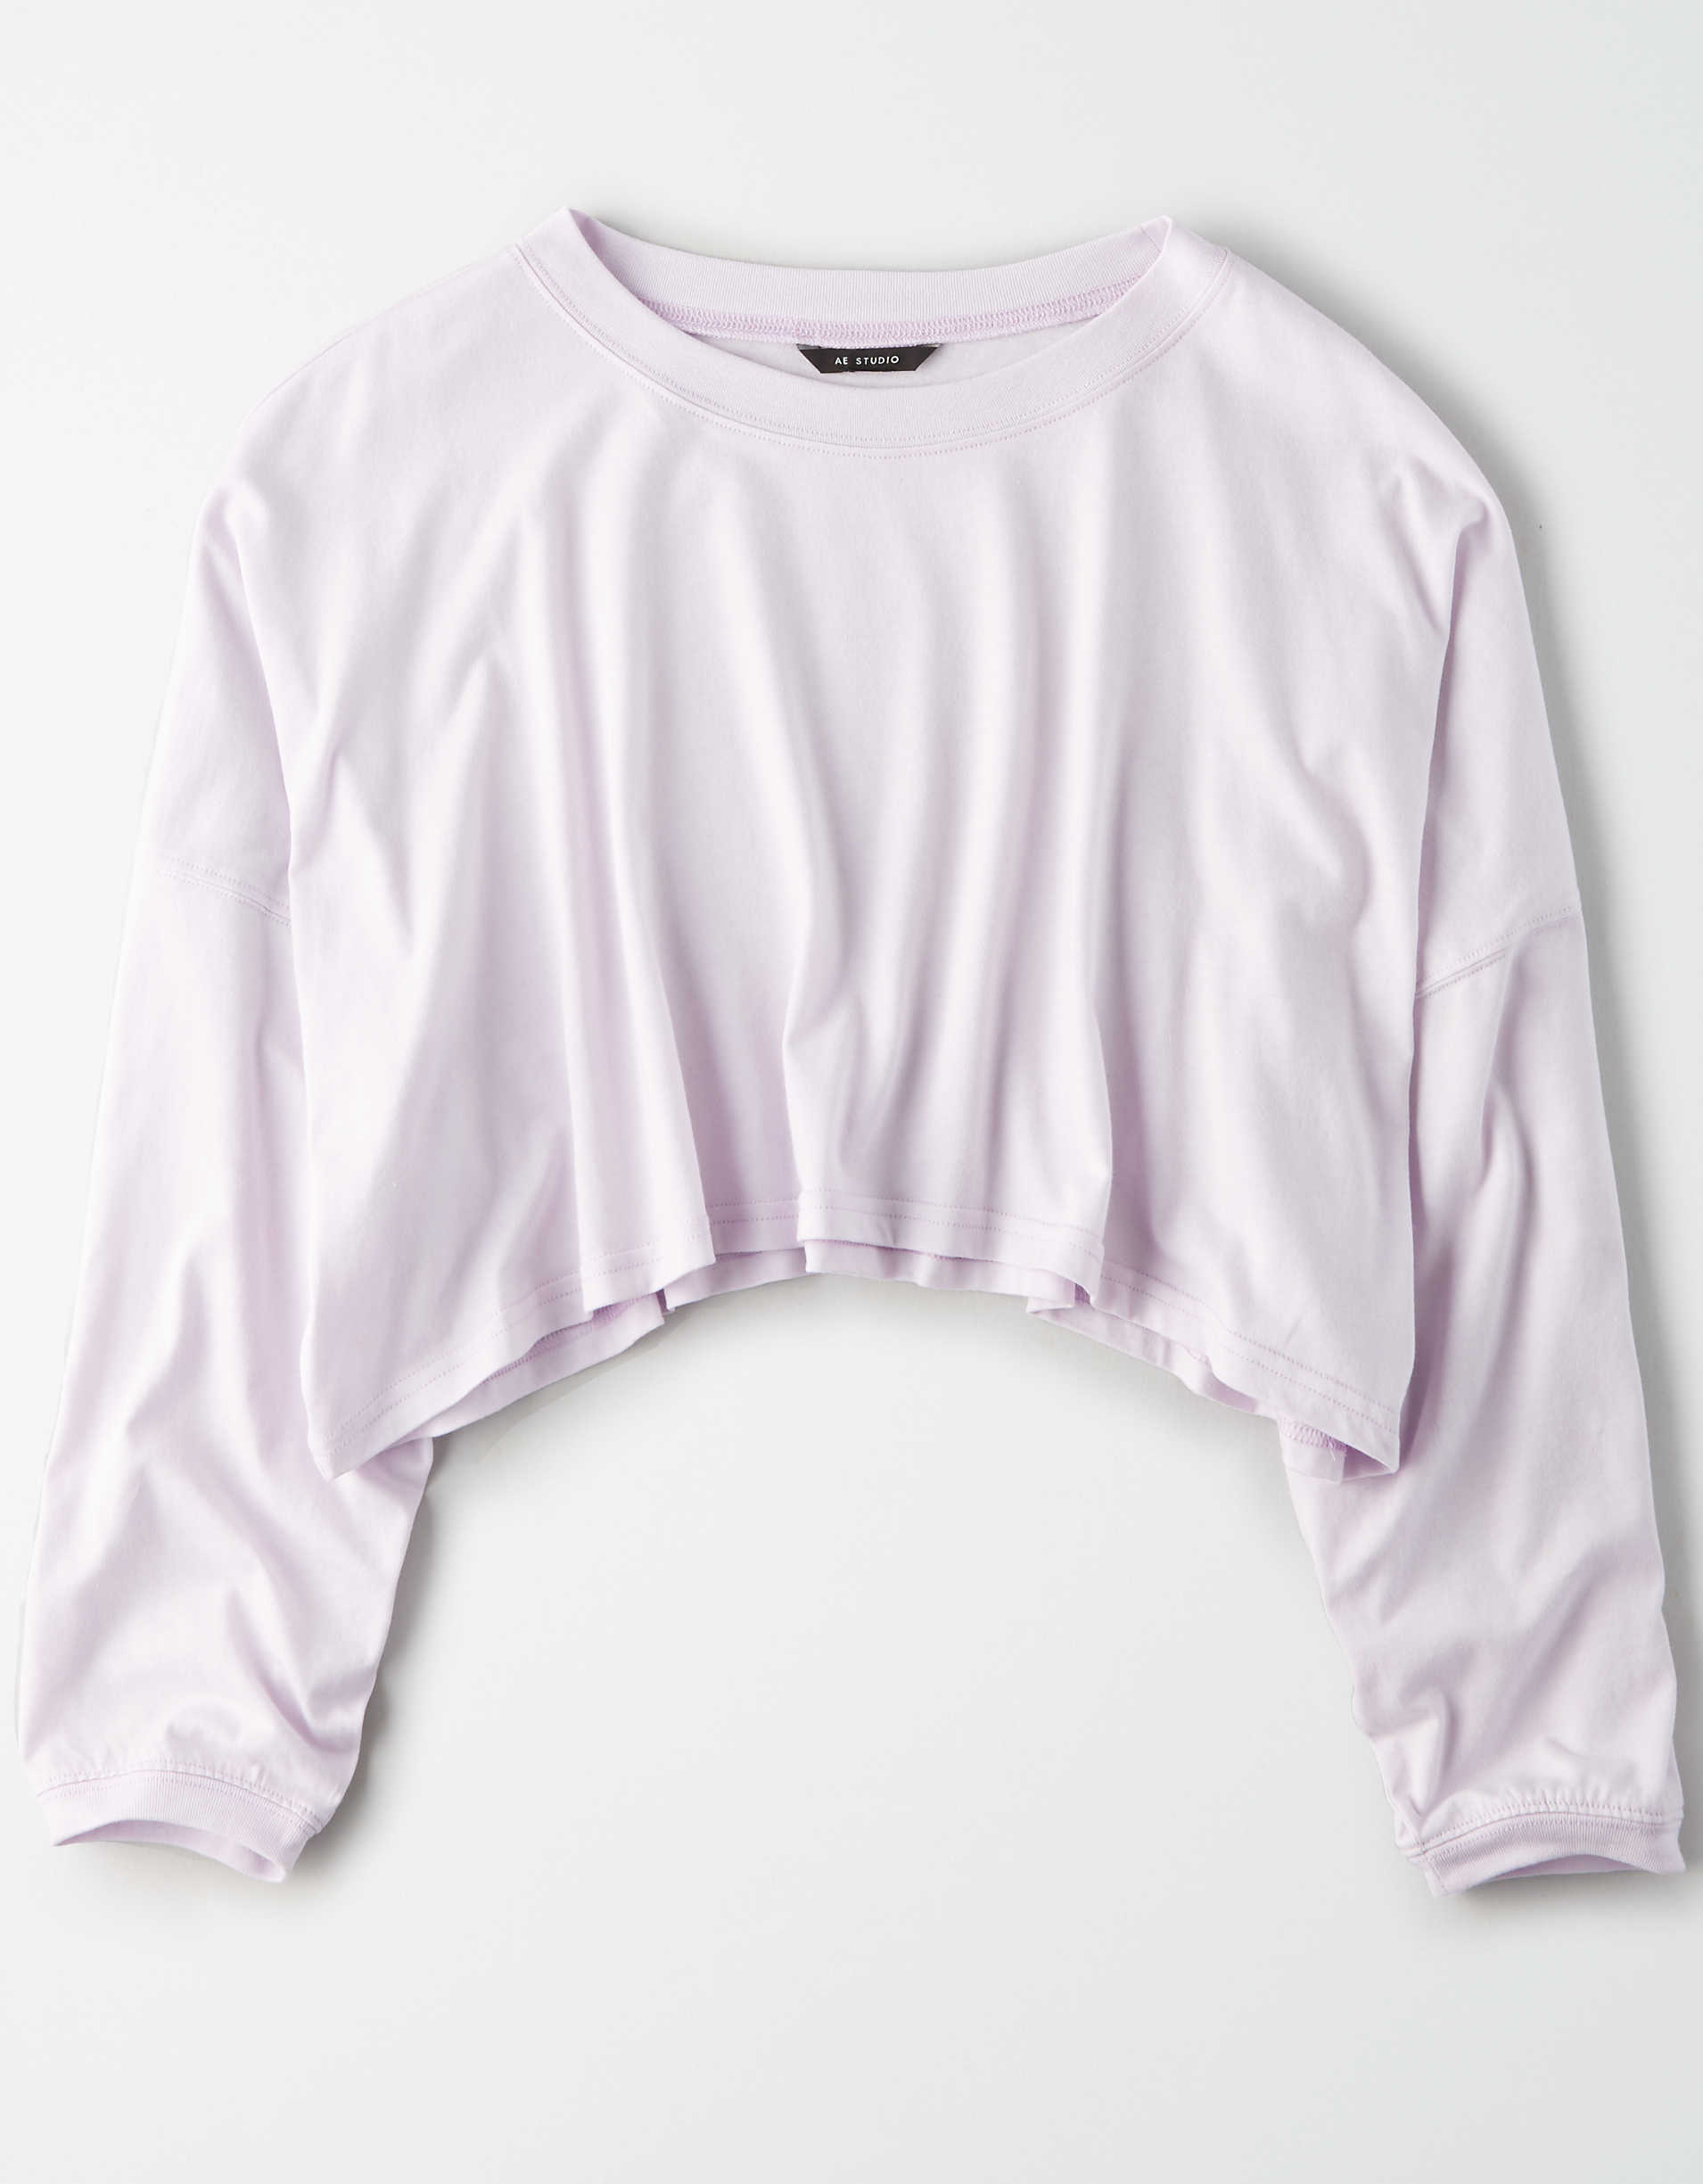 AE Studio Long Sleeve Cropped T-Shirt